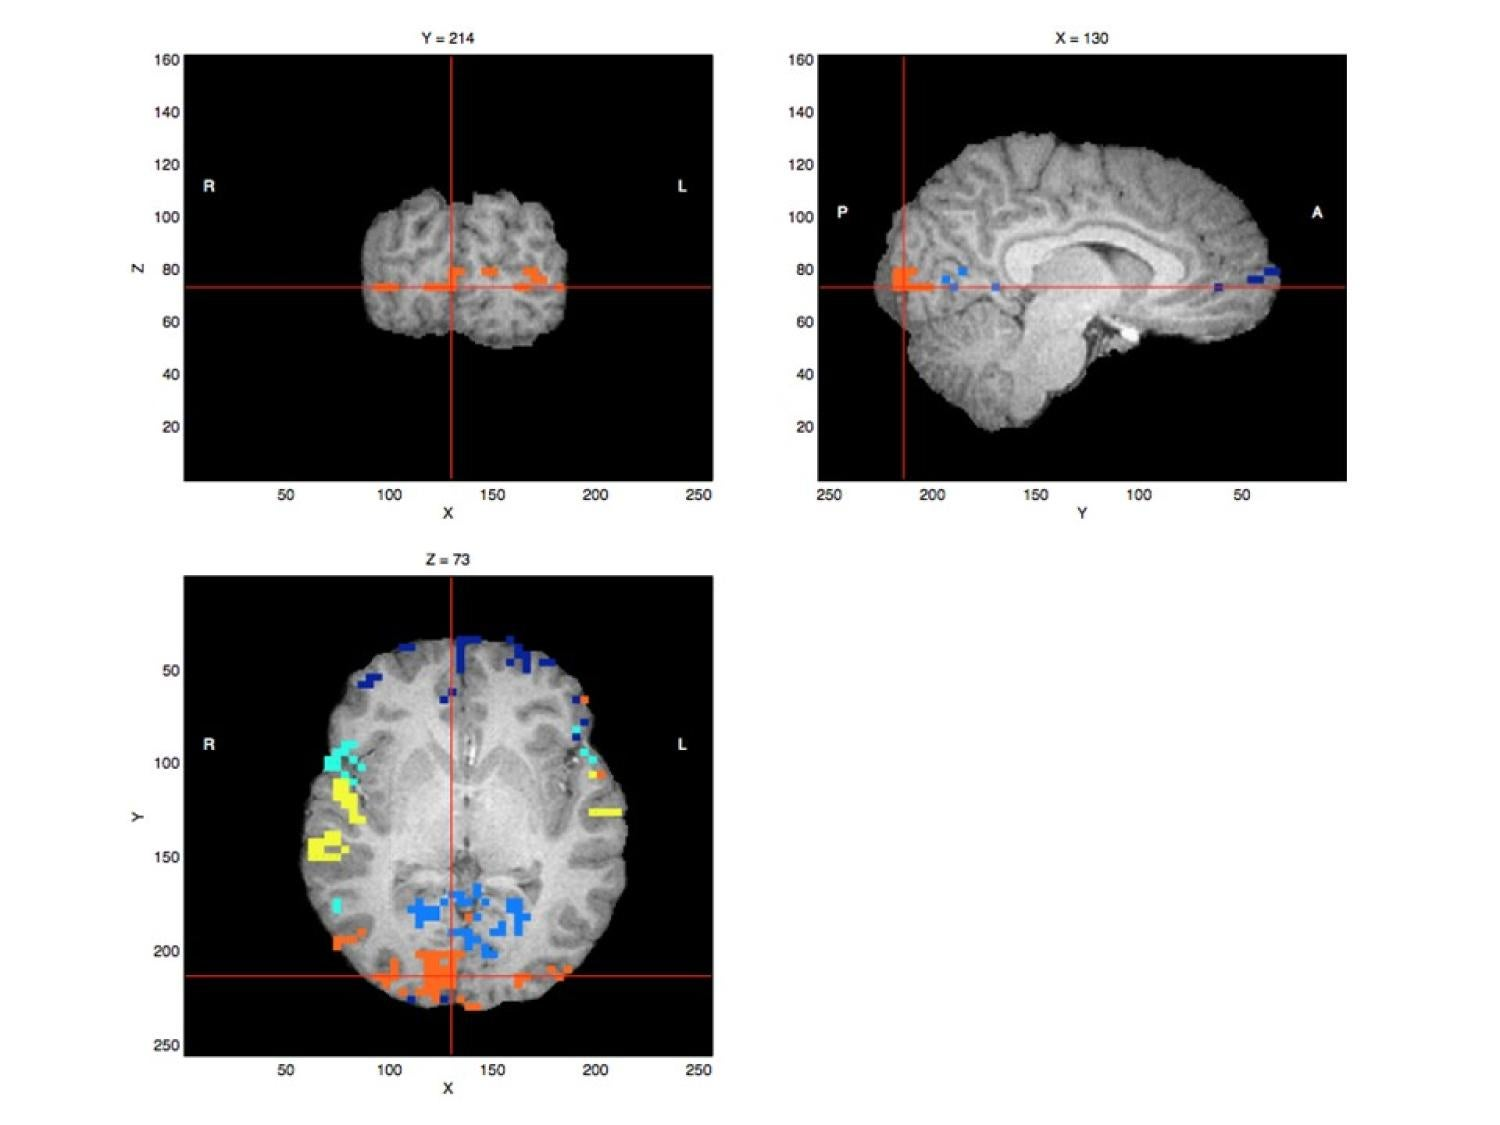 Functional MRI (fMRI) images that measures brain activity.